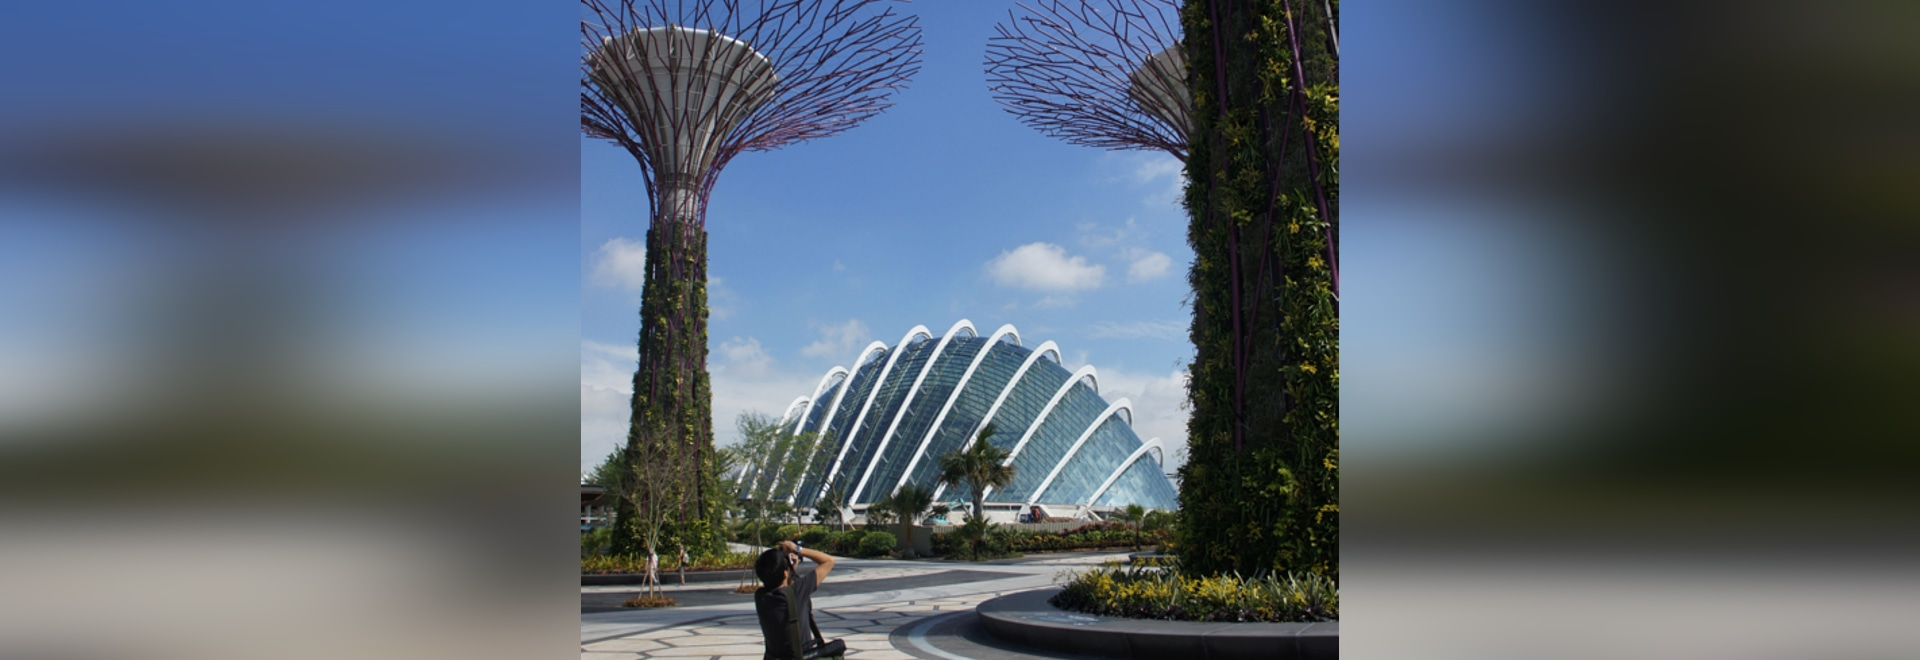 One of the two armadillo-like conservatories in Singapore's Bay South Garden – the first completed part of the coastal Gardens by the Bay project